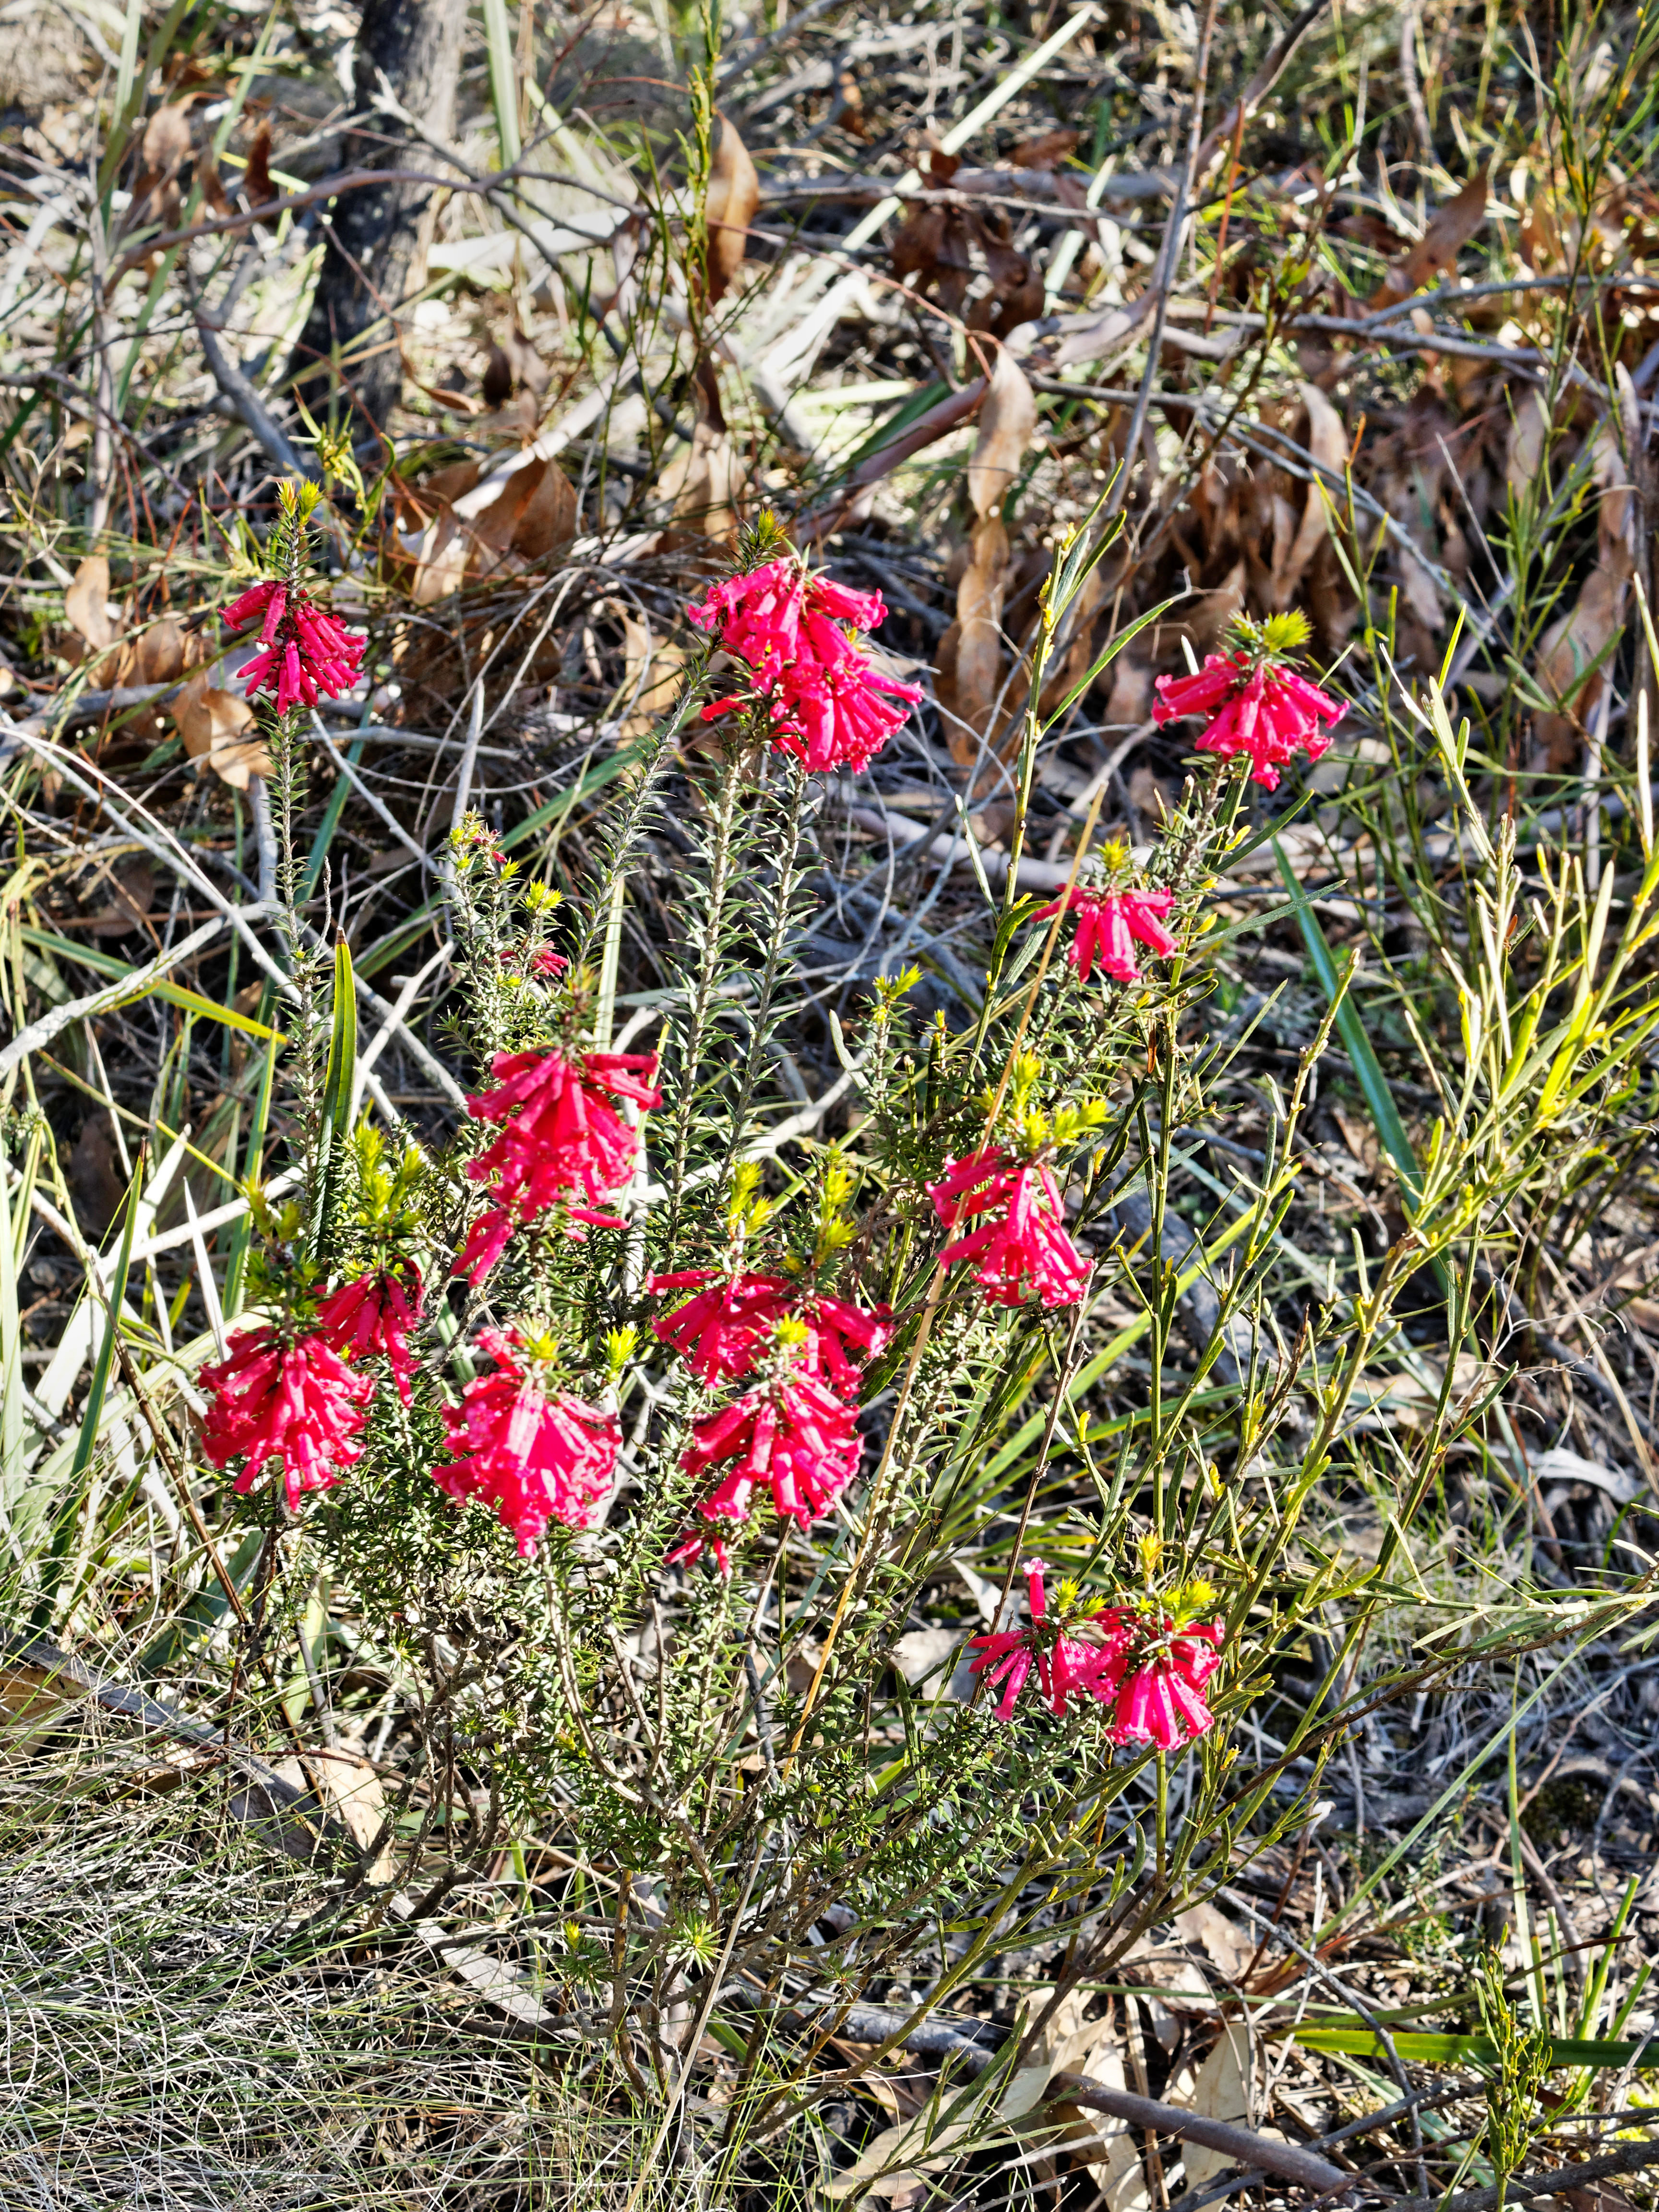 This should be Epacris-impressa-2.jpeg.  Is it missing?